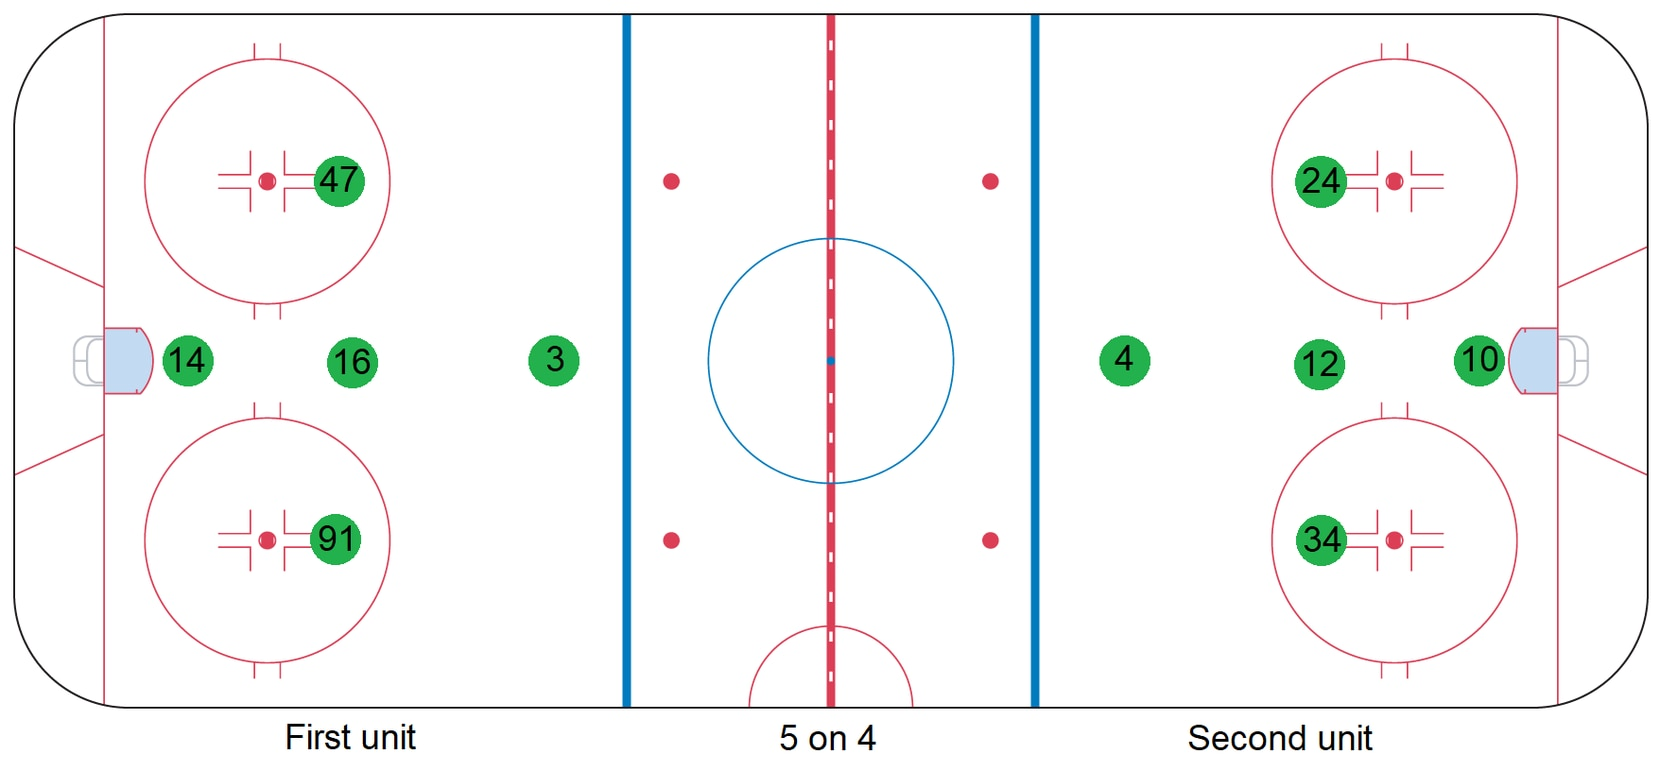 The Stars' 5 on 4 power play formations shown during training camp in July 2020.